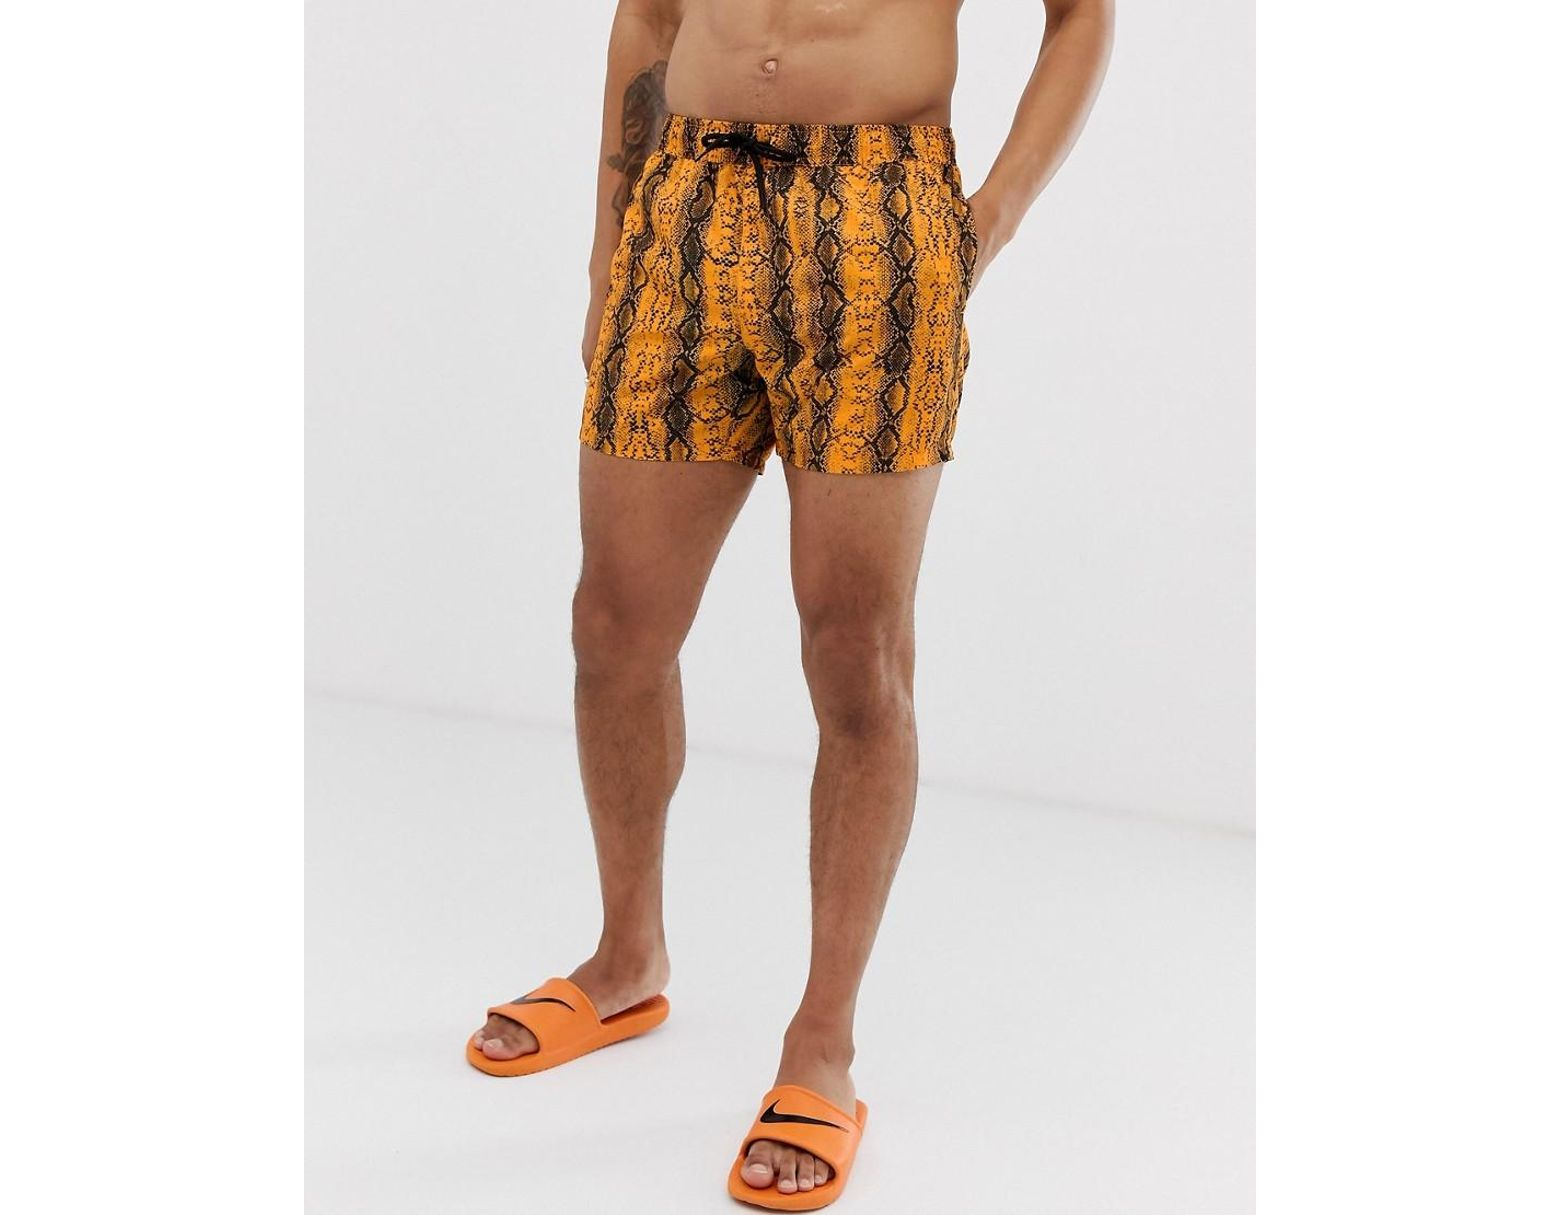 f138a84bb0 ASOS Swim Shorts In Neon Orange Snake Print Short Length in Orange for Men  - Lyst